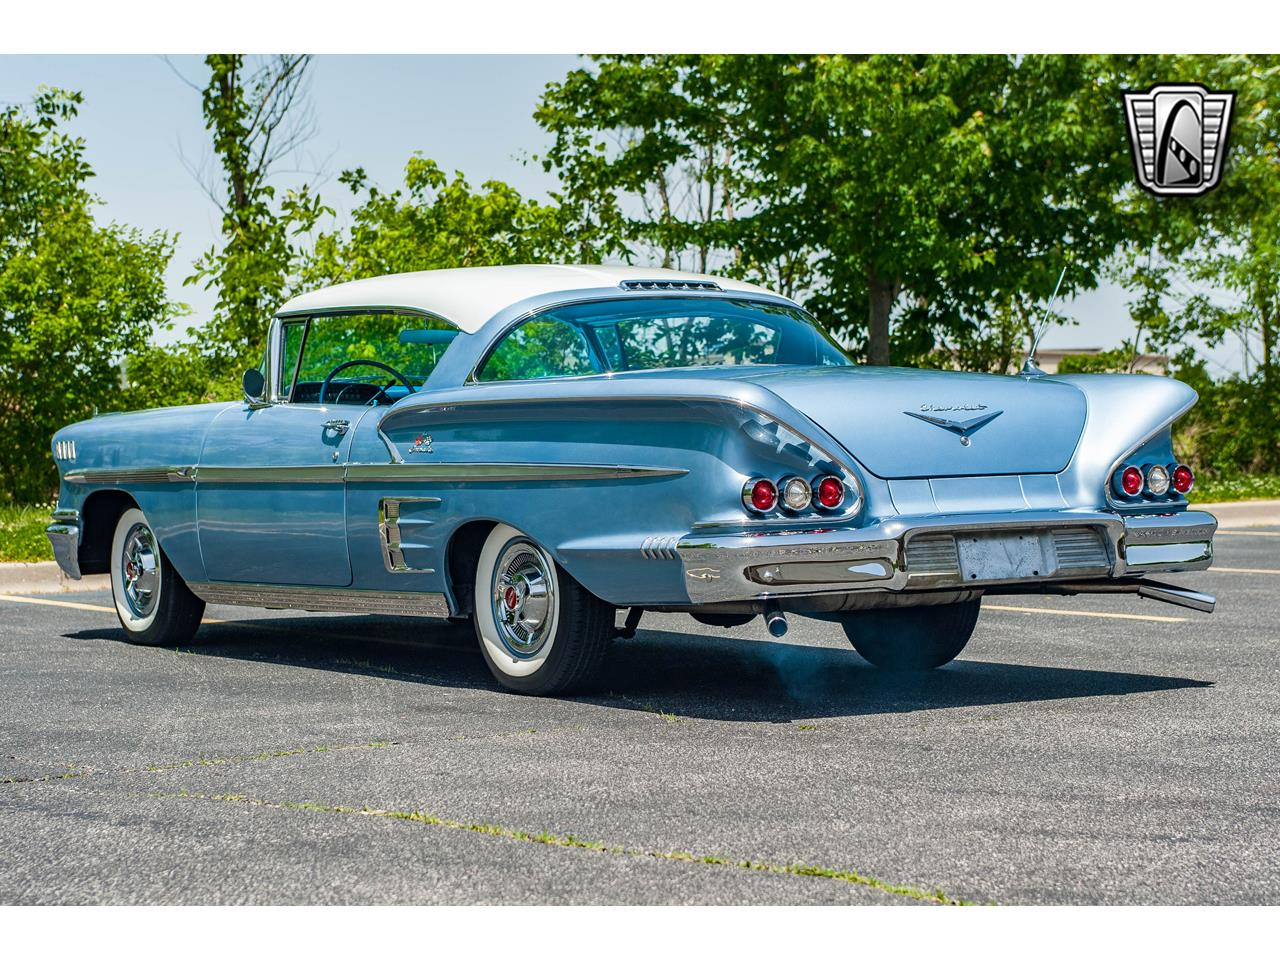 Large Picture of '58 Impala located in Illinois - $62,000.00 Offered by Gateway Classic Cars - St. Louis - QB9Q